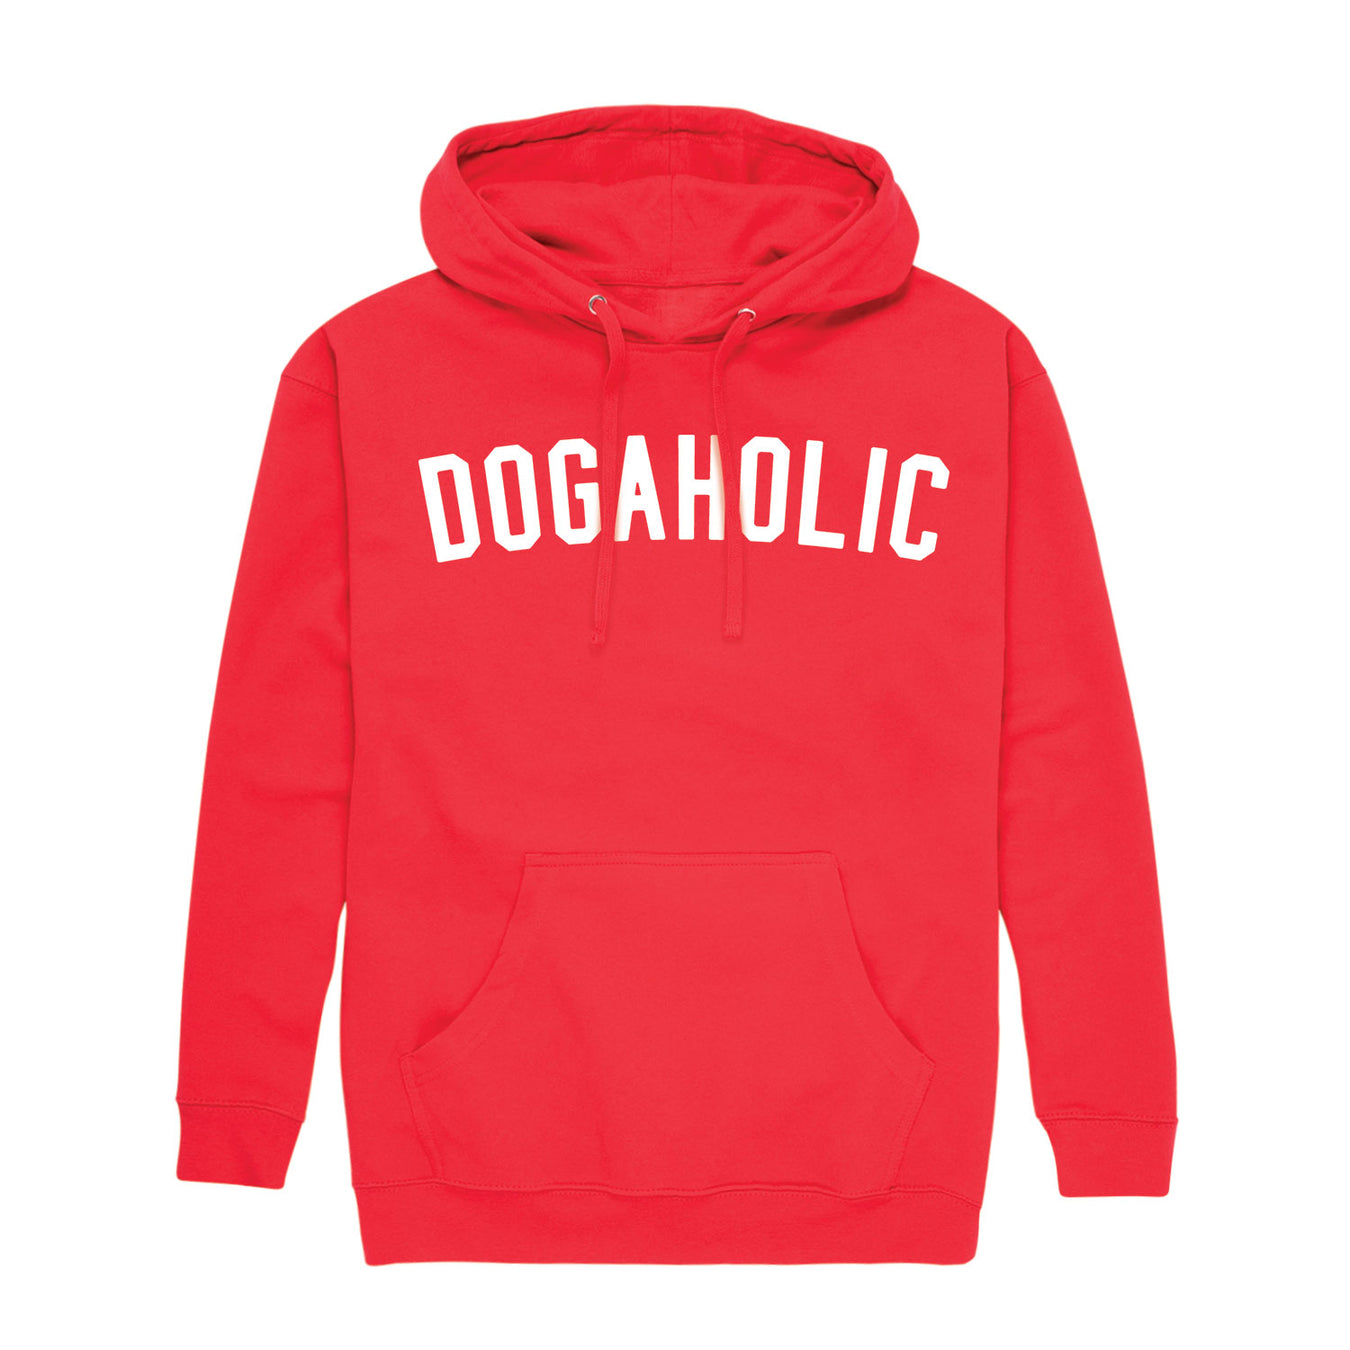 Hoodies & Sweatshirts Collection